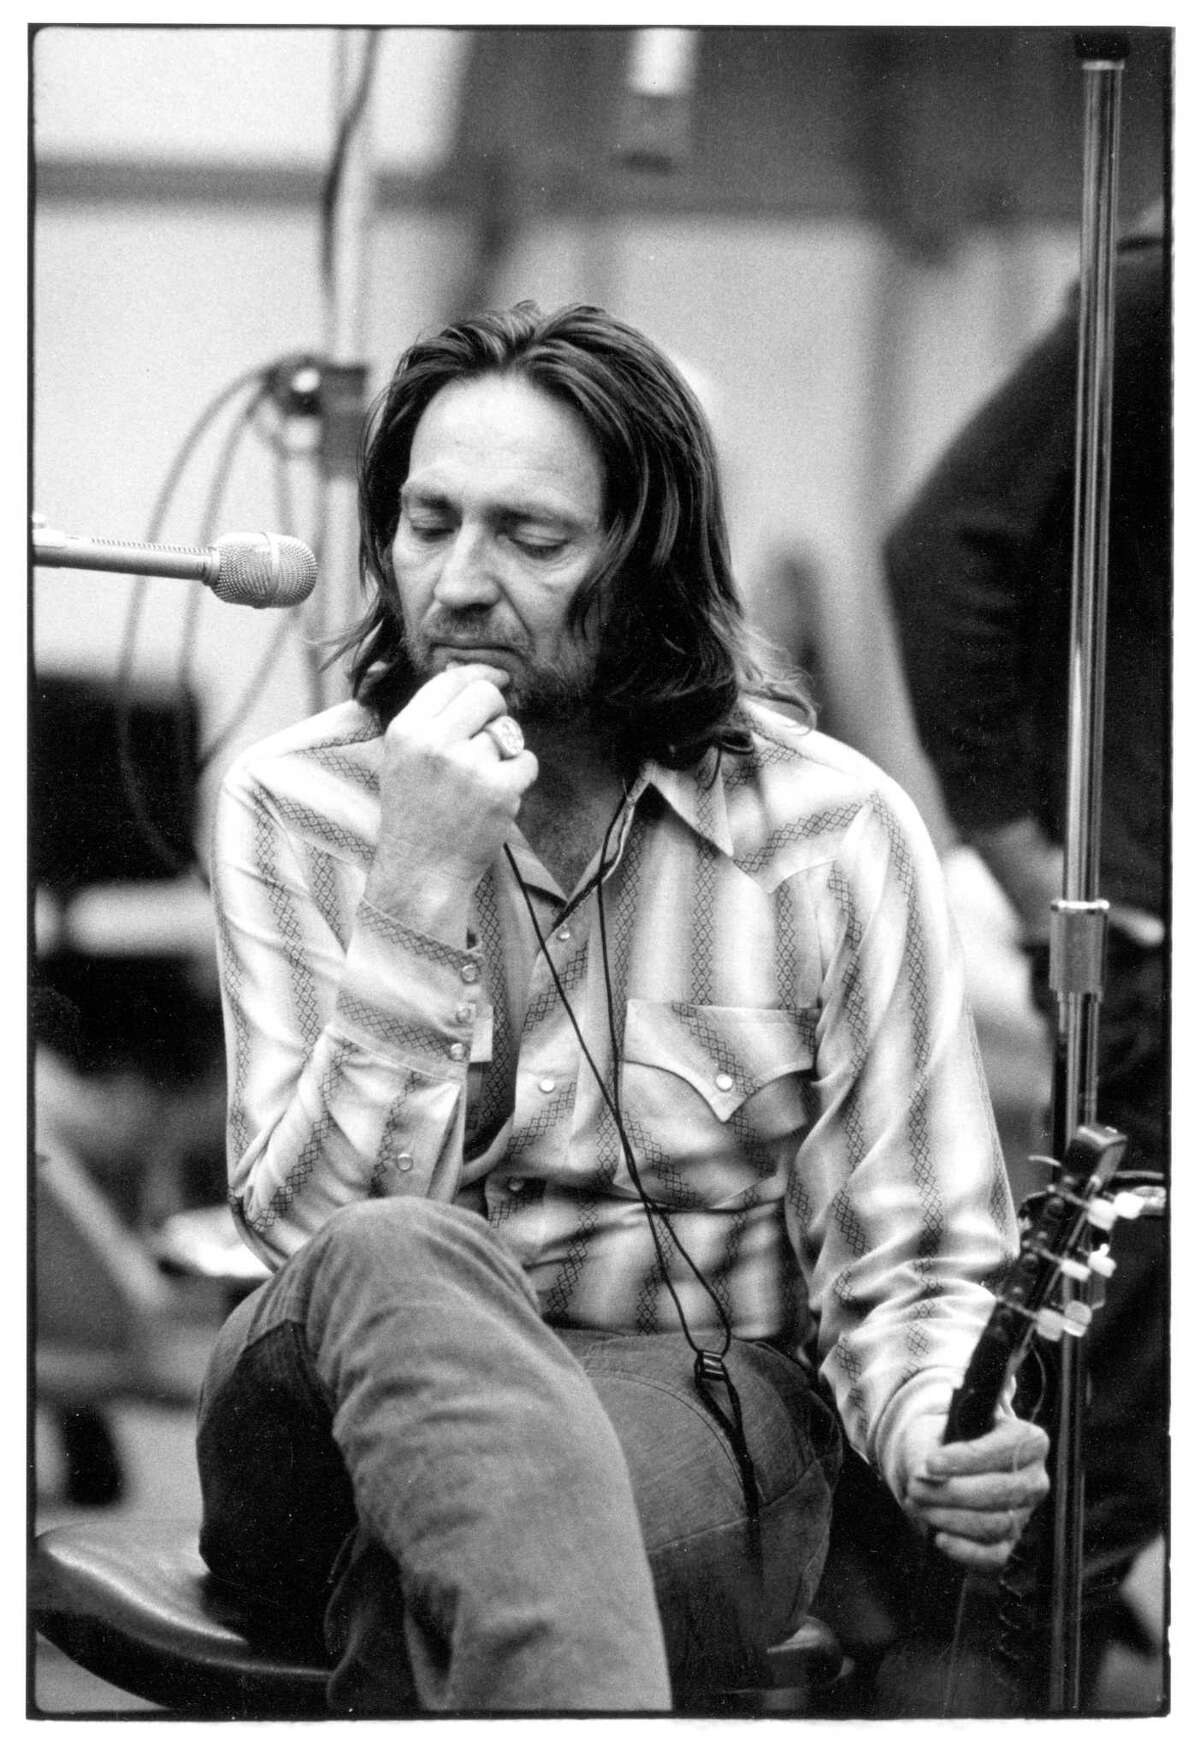 Willie Nelson, early 1970s. courtesy of Rhino Records Credit: David Gahr